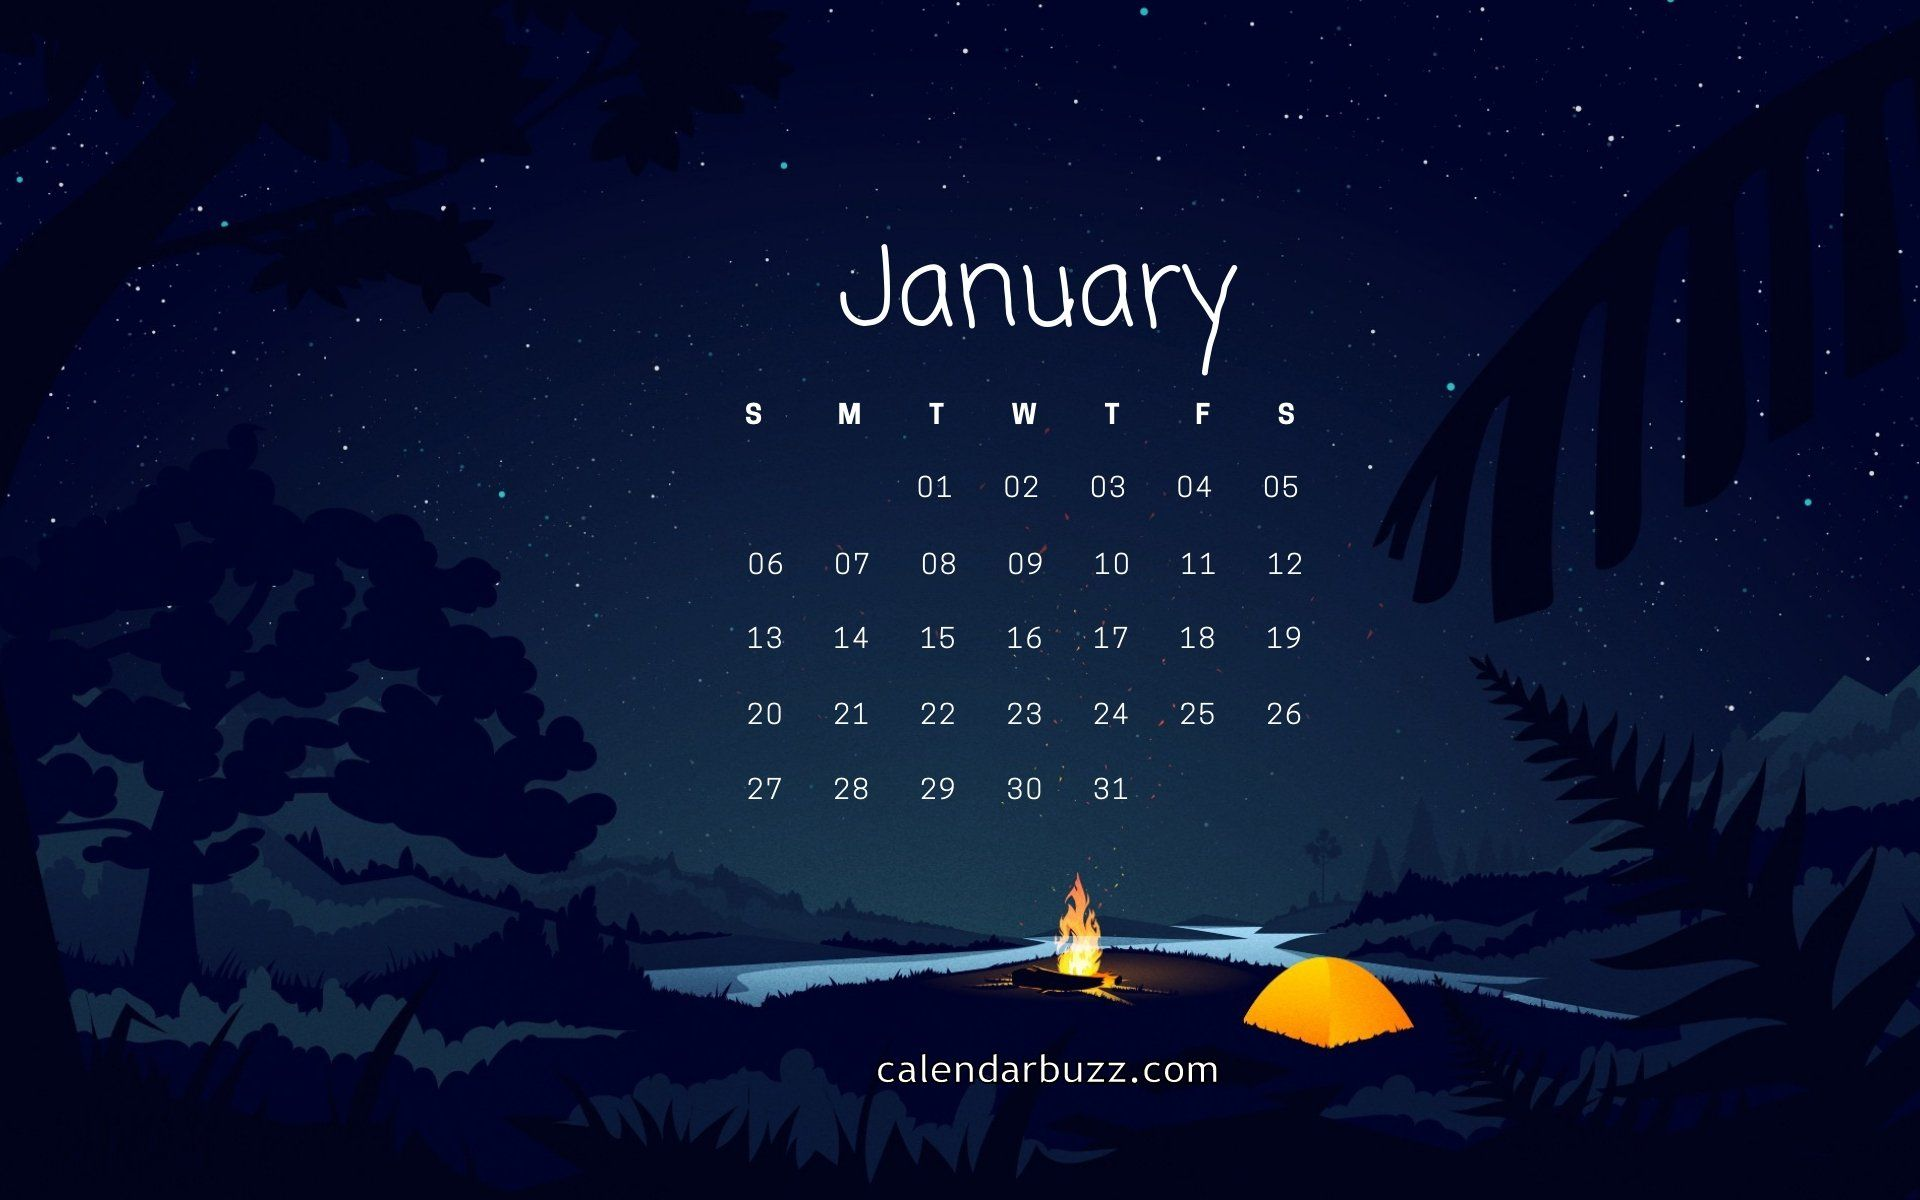 Unique January 2019 Pc Wallpaper January Wallpaper Calendar Wallpaper Wallpaper